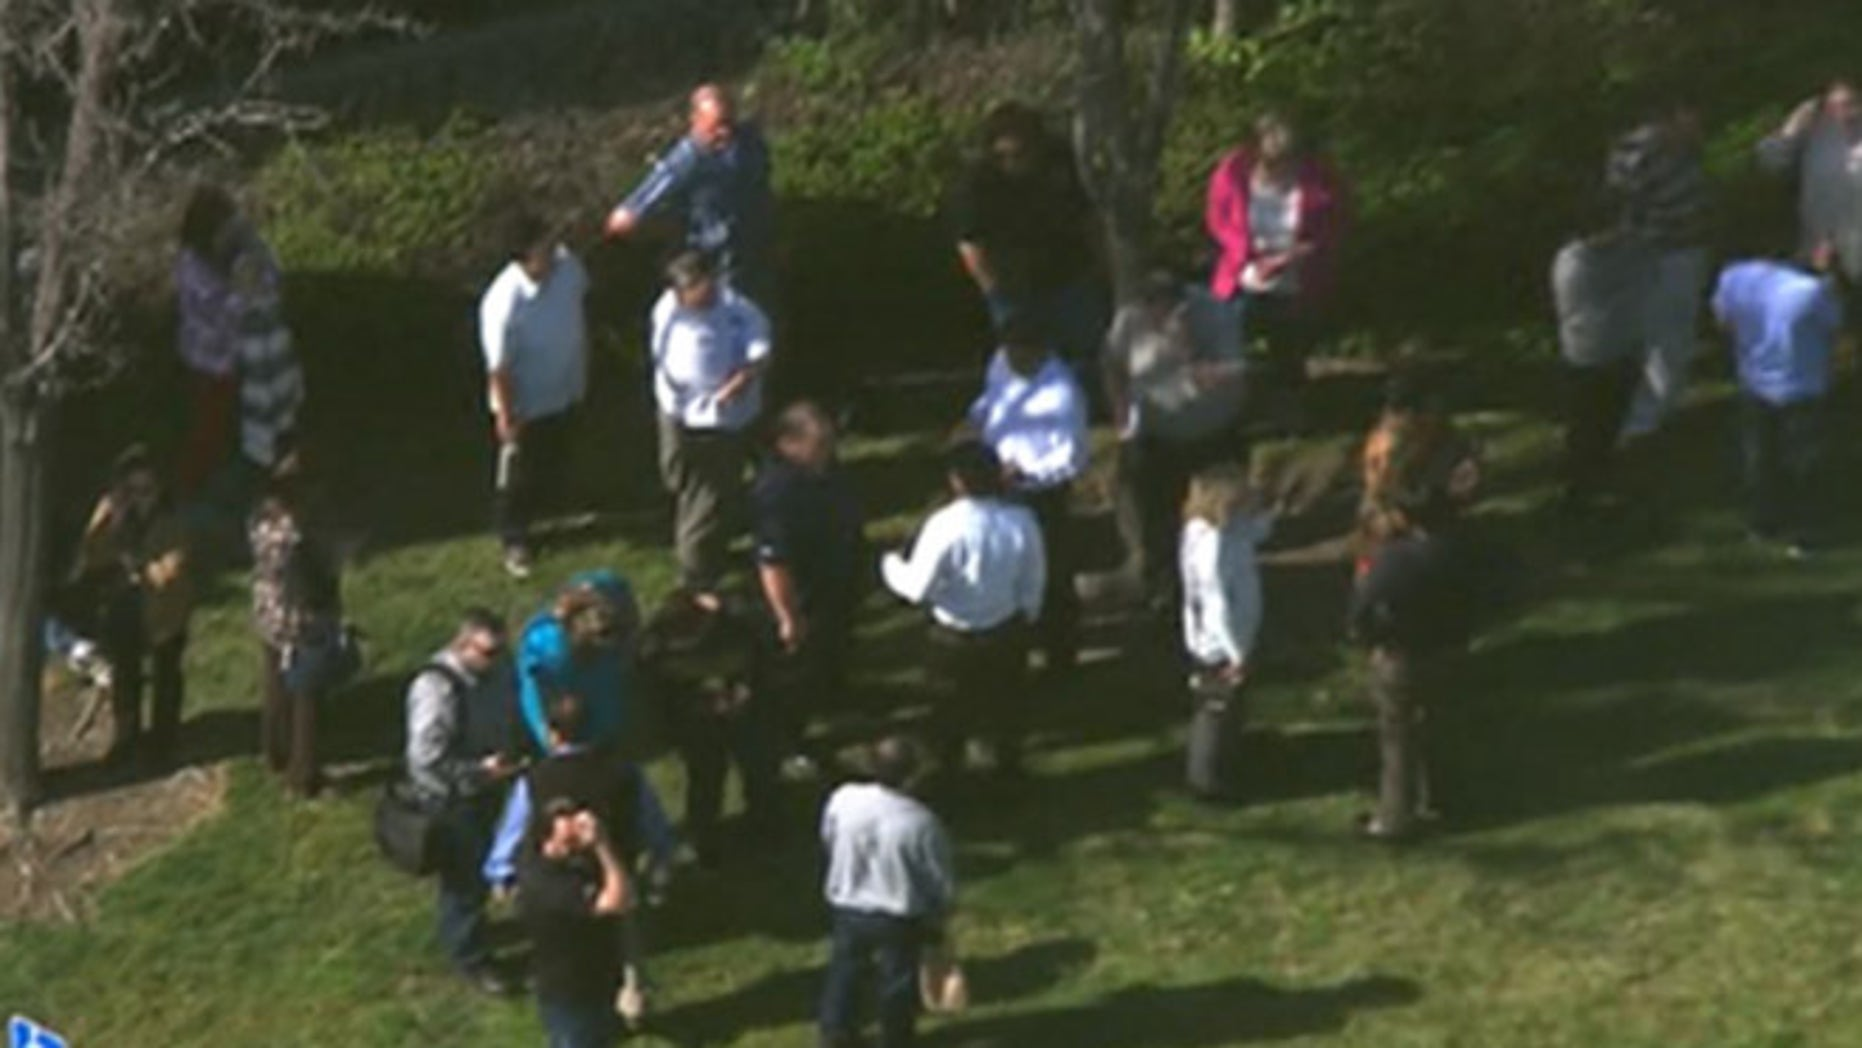 Emergency crews respond to reports of a suspicious package outside a federal building in Alameda, Calif.